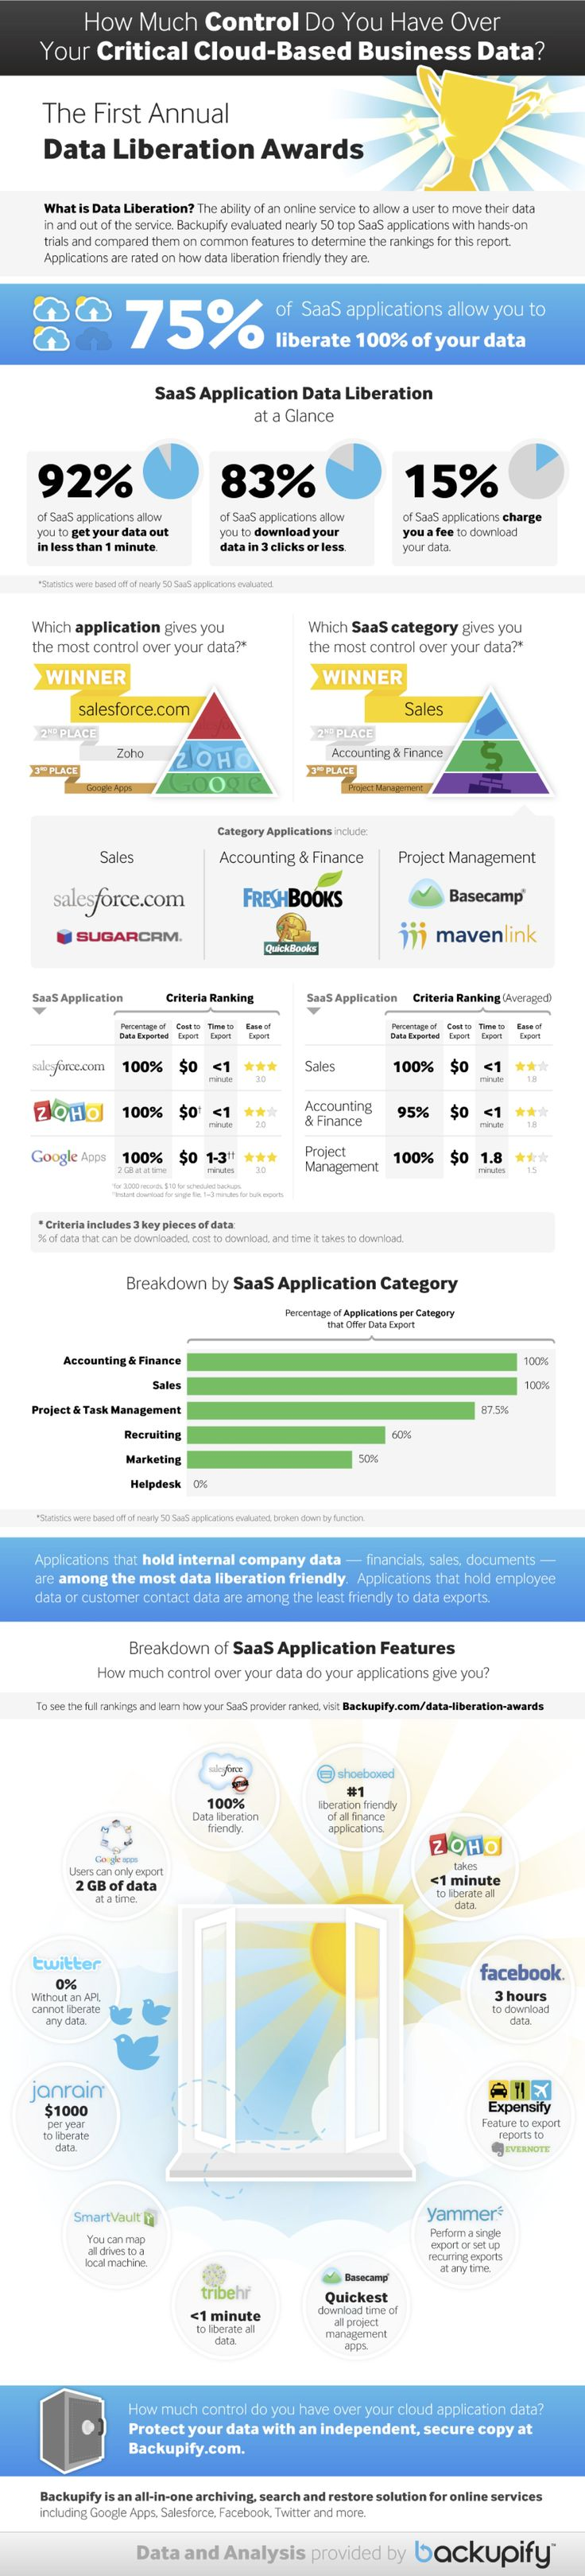 [Infographic] How Much Control Do You Have Over Your Critical Cloud-Based Business Data? | Backupify